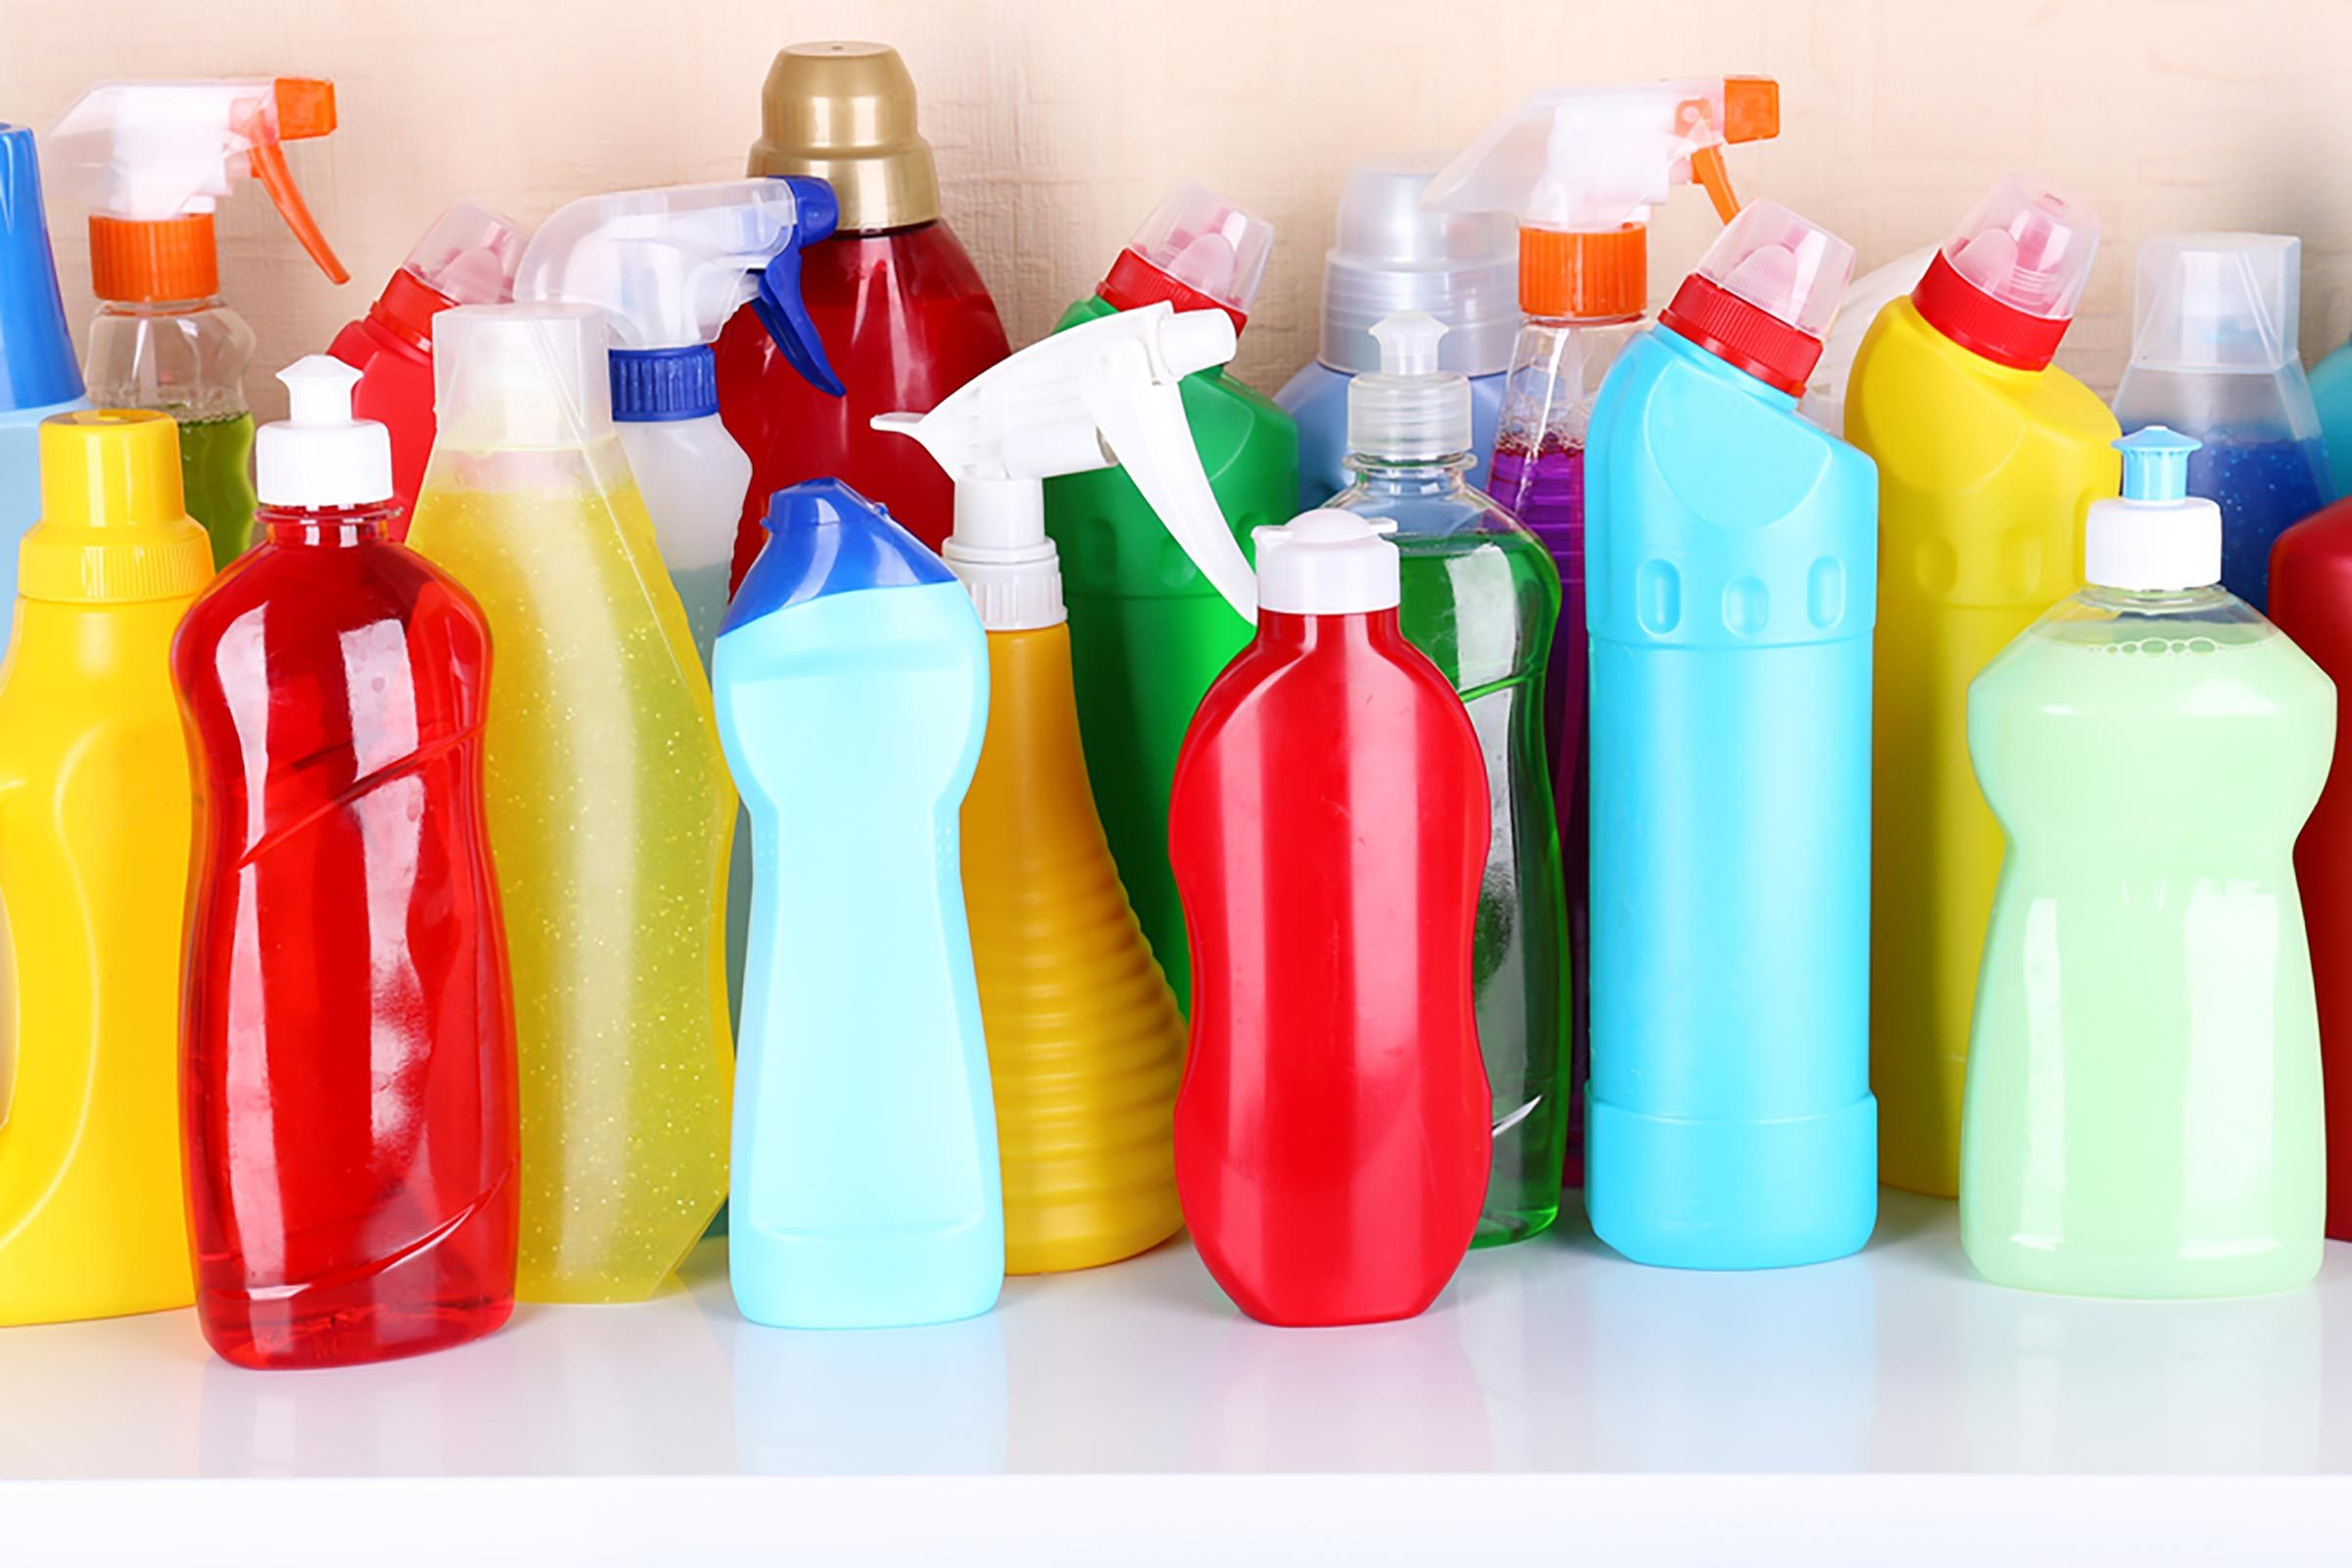 Cleaning Products You Should Never Mix | Reader's Digest